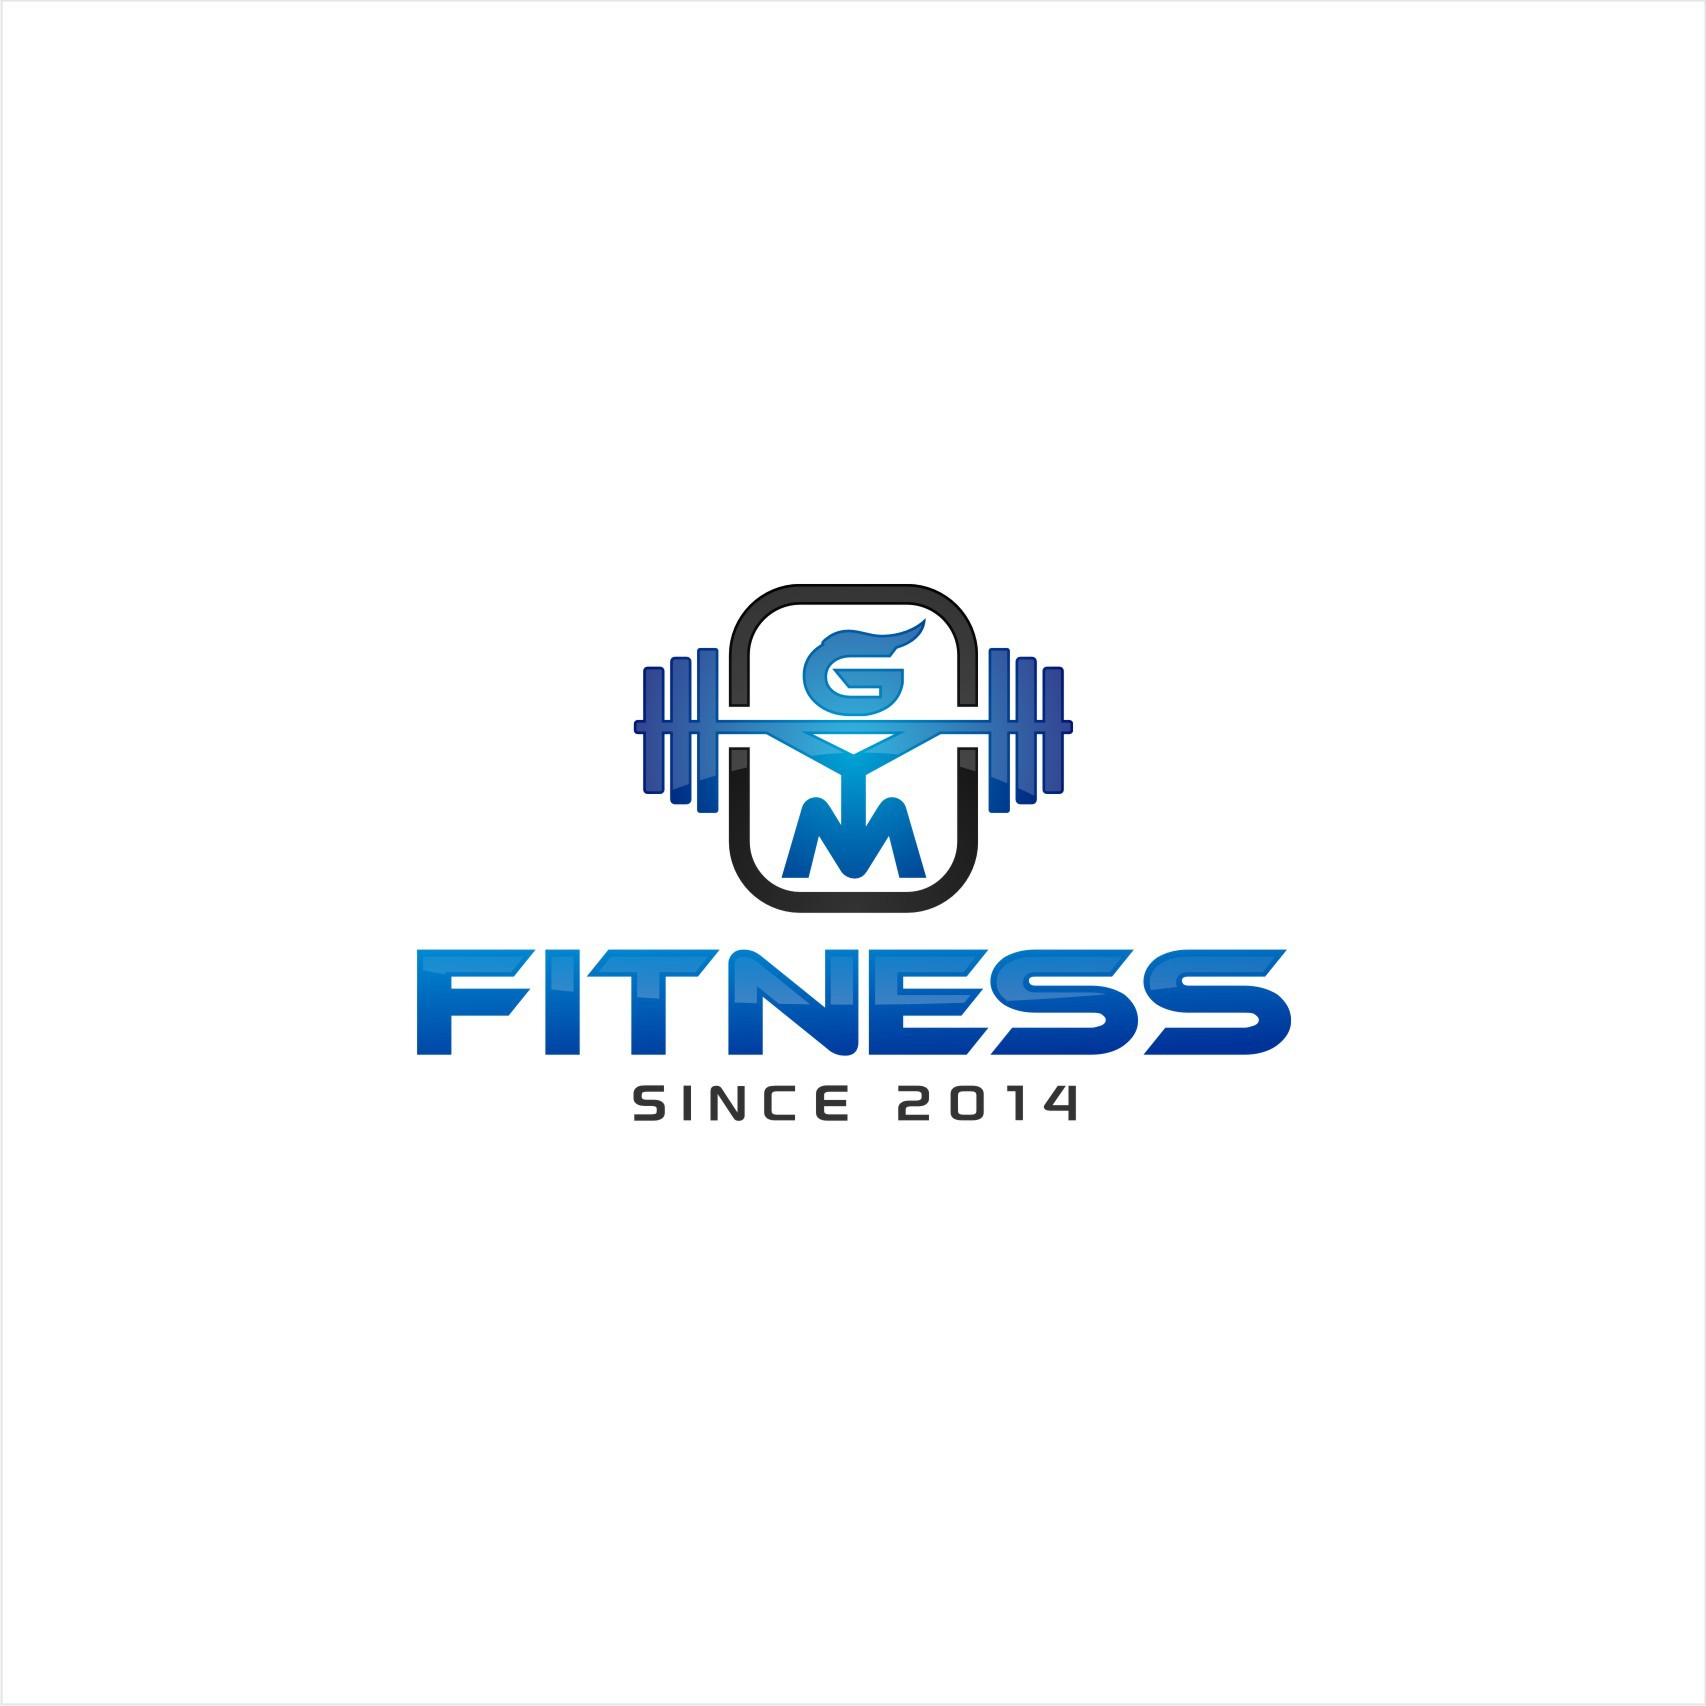 Create a modern logo for a FITNESS GYM (must include a bar and weights in it)